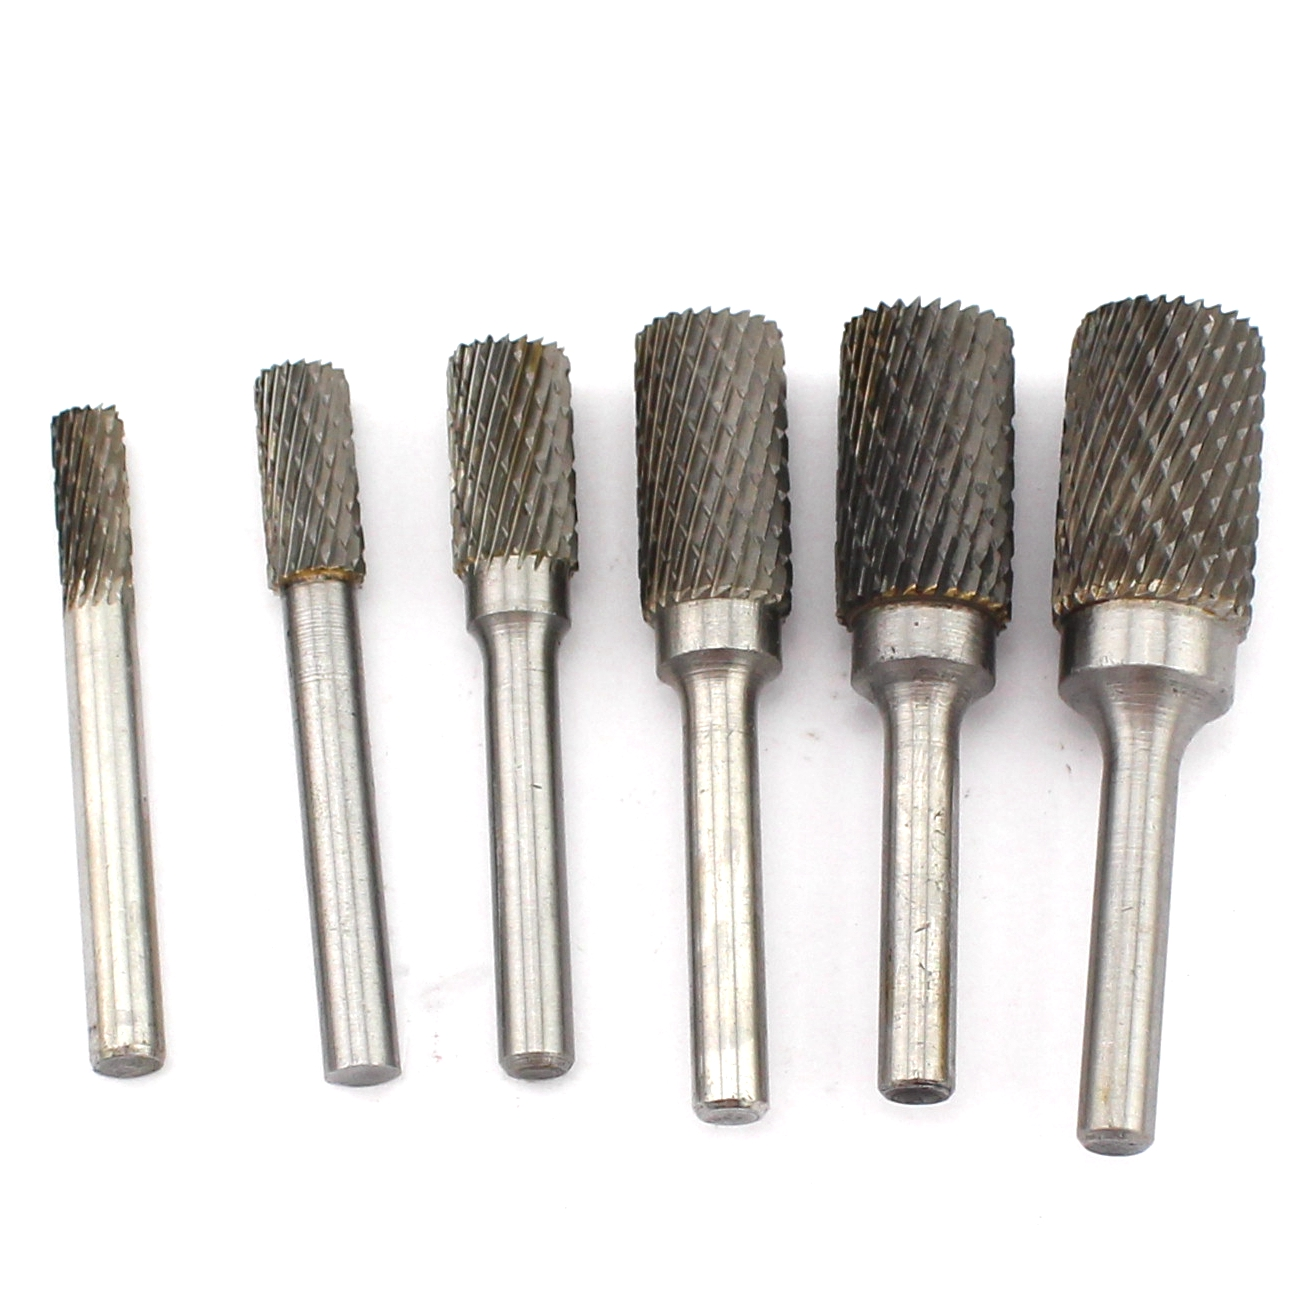 6 8 10 12 14 16mm Head Shape Cylindrical Tungsten Steel Solid Carbide Burrs Cylinder Rotary Tool Drill Bit Dbl End Cut 6mm Shank